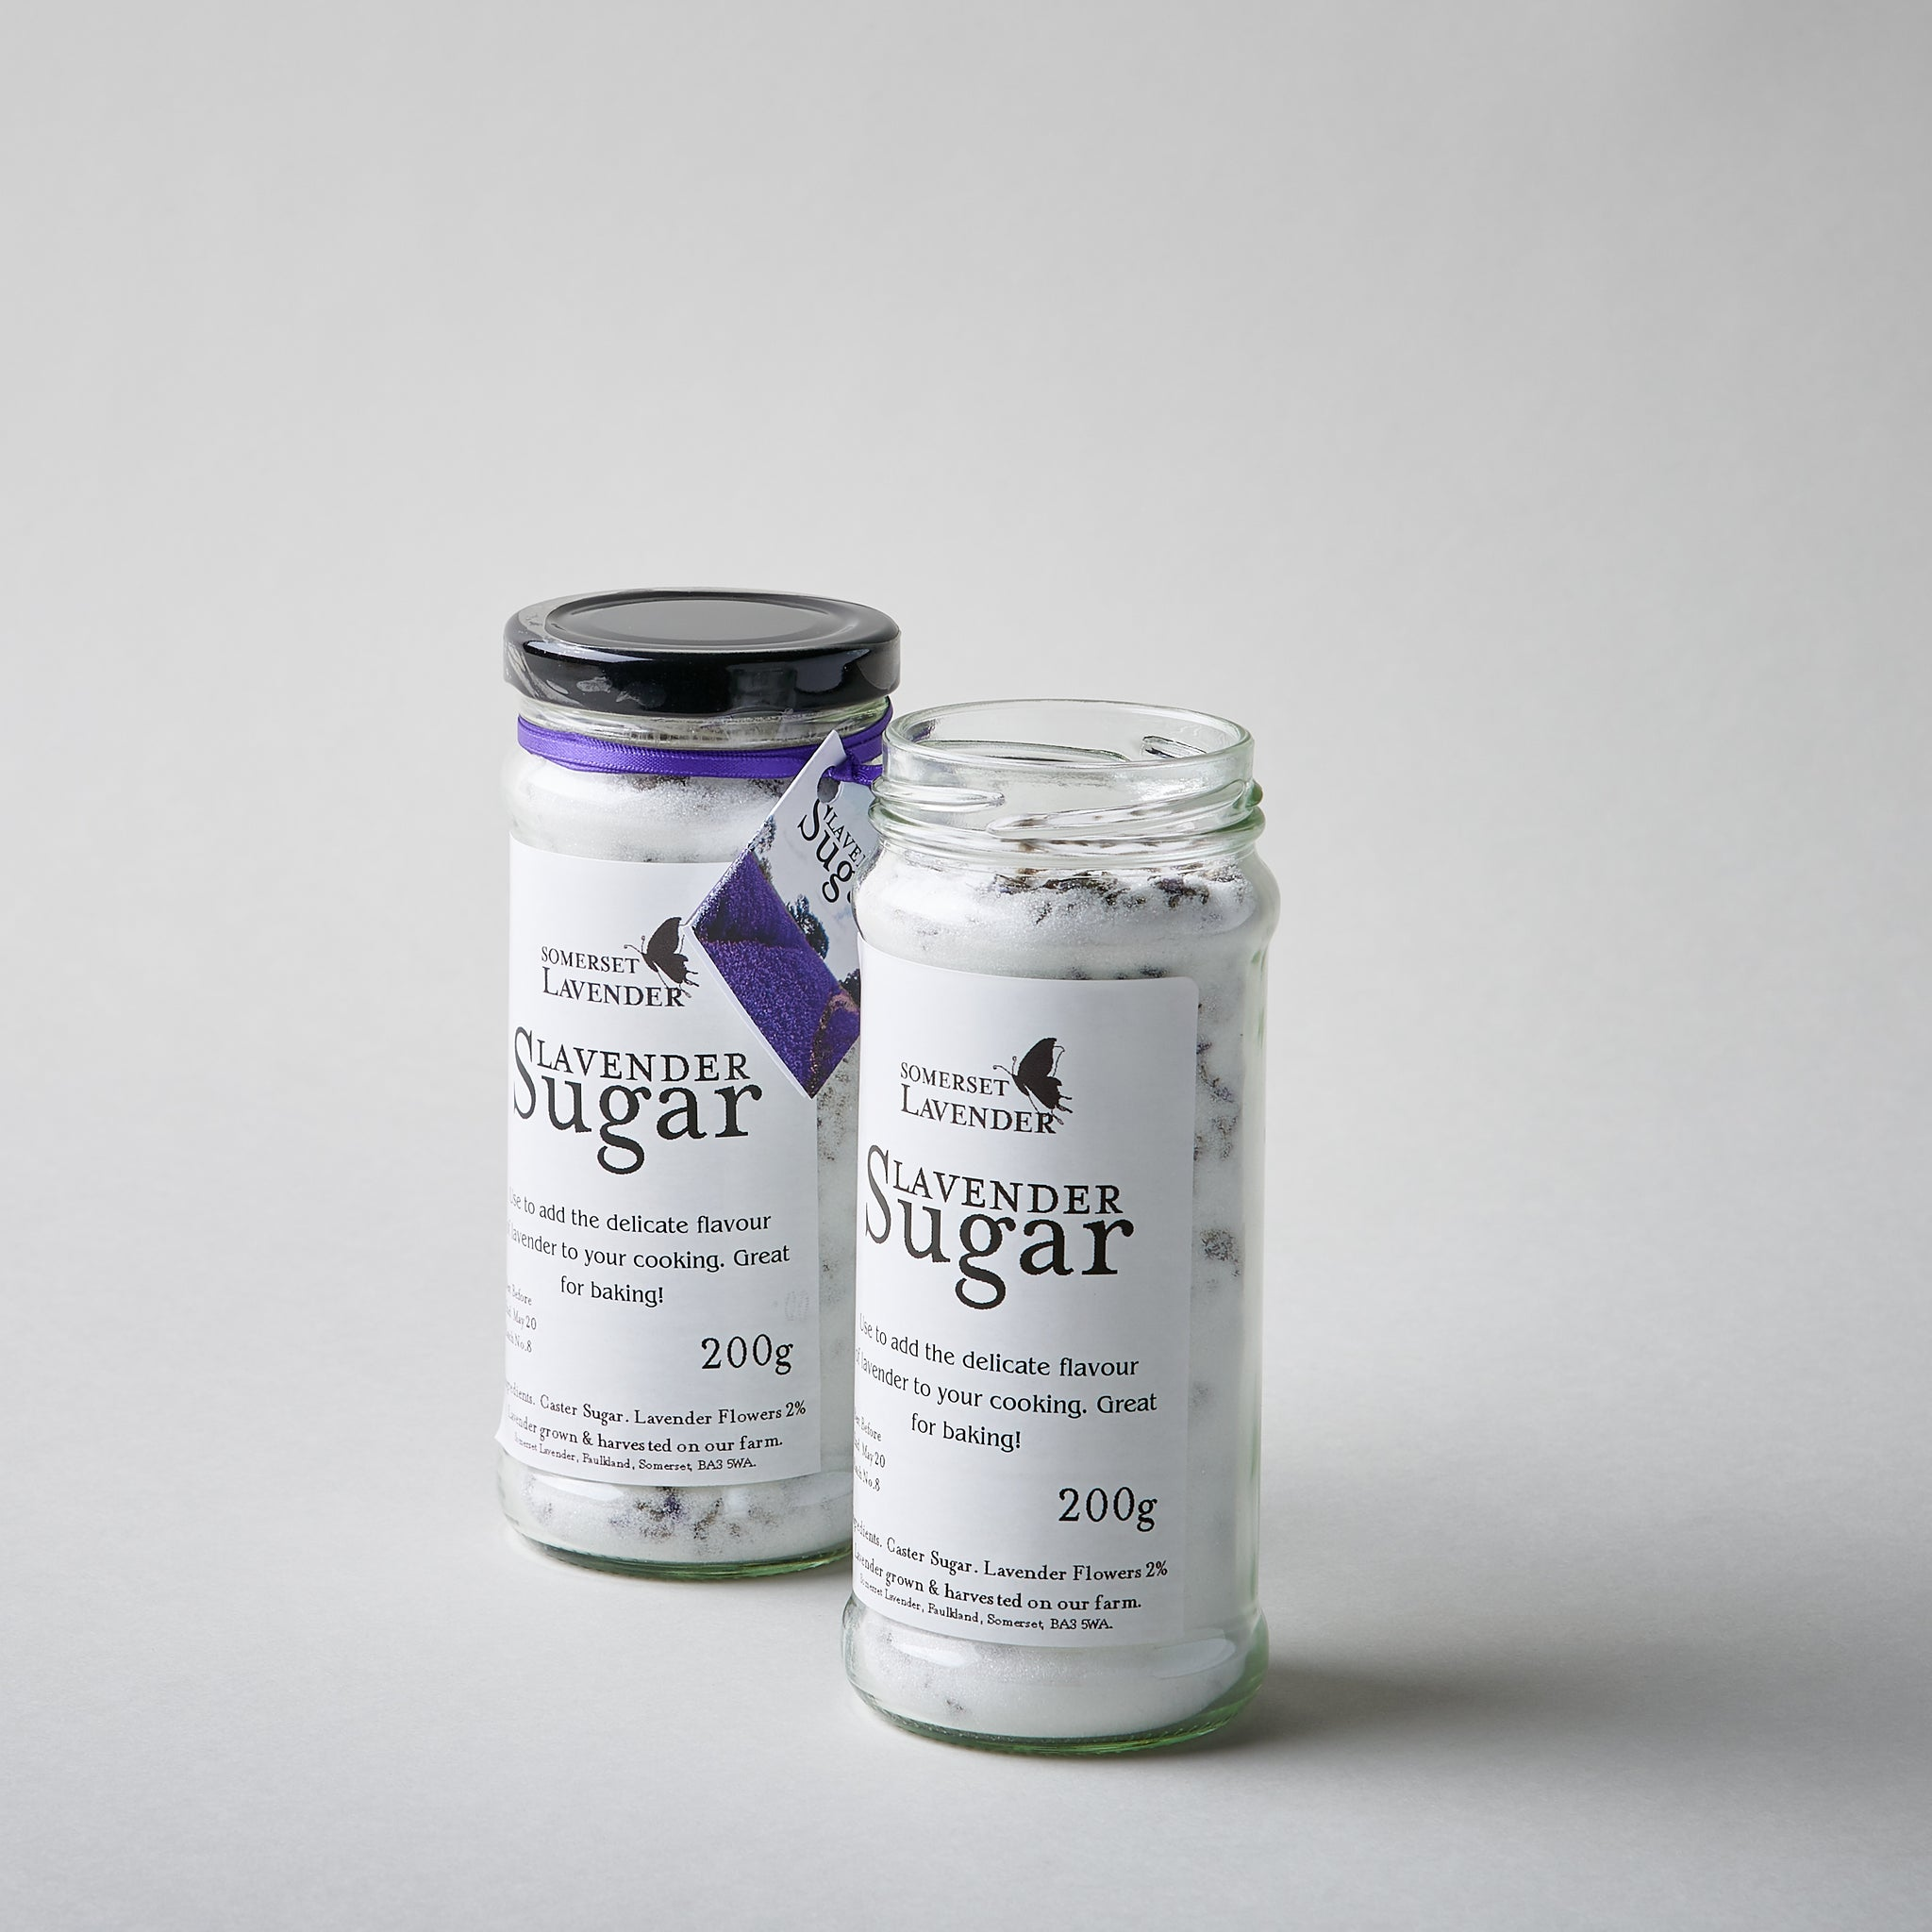 Culinary Sugar Infused with Lavender